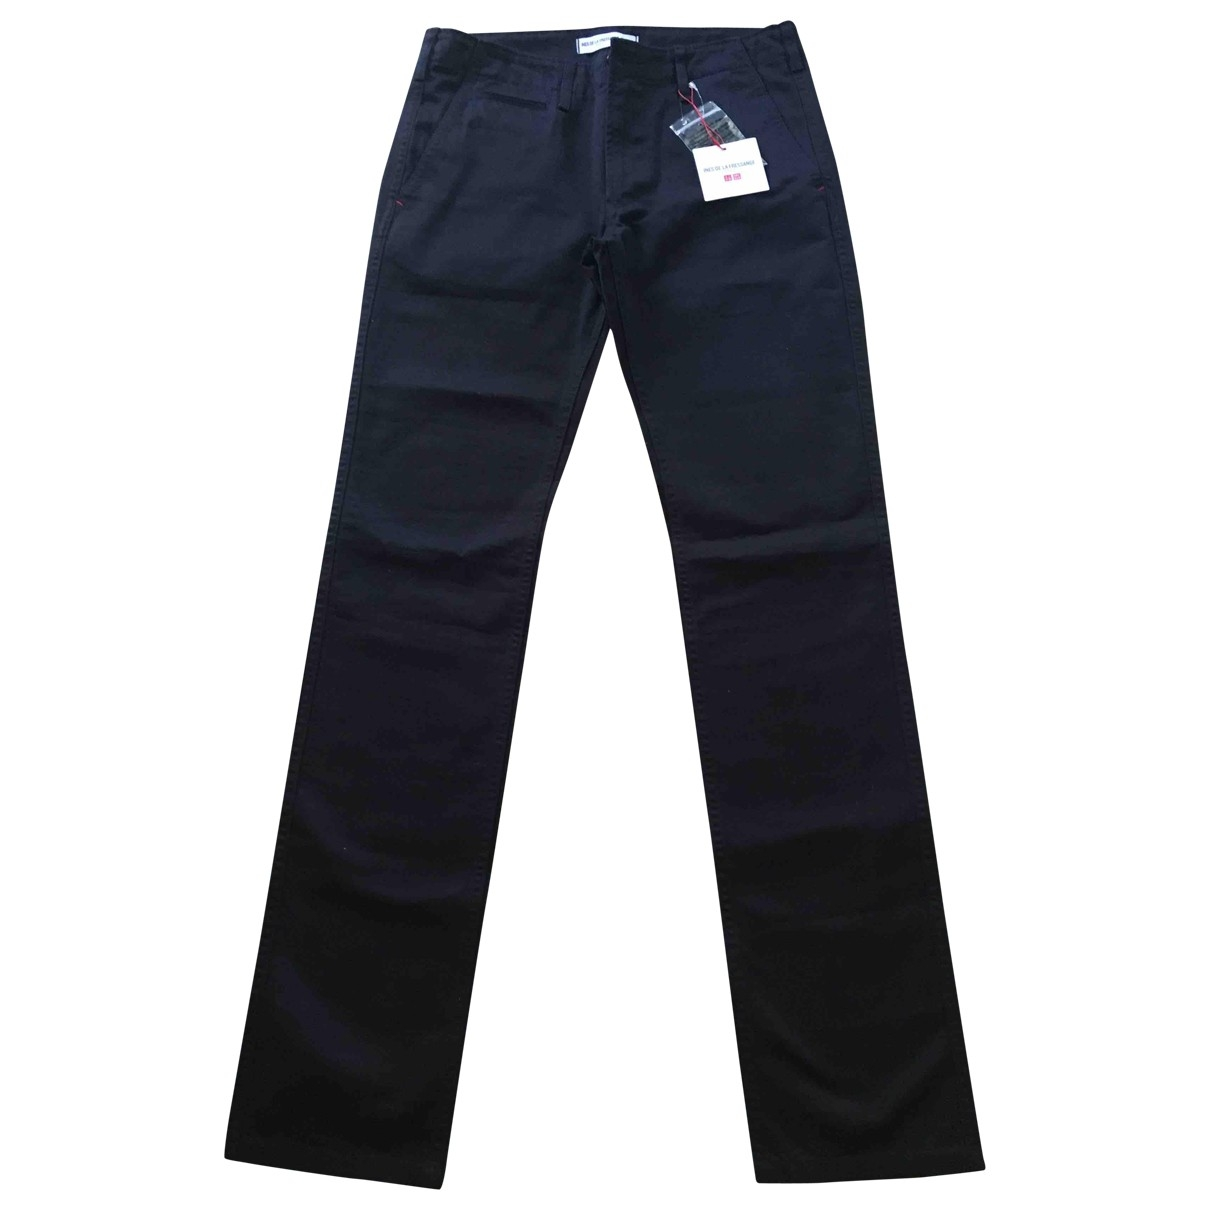 Uniqlo \N Navy Cotton Trousers for Women 36 FR